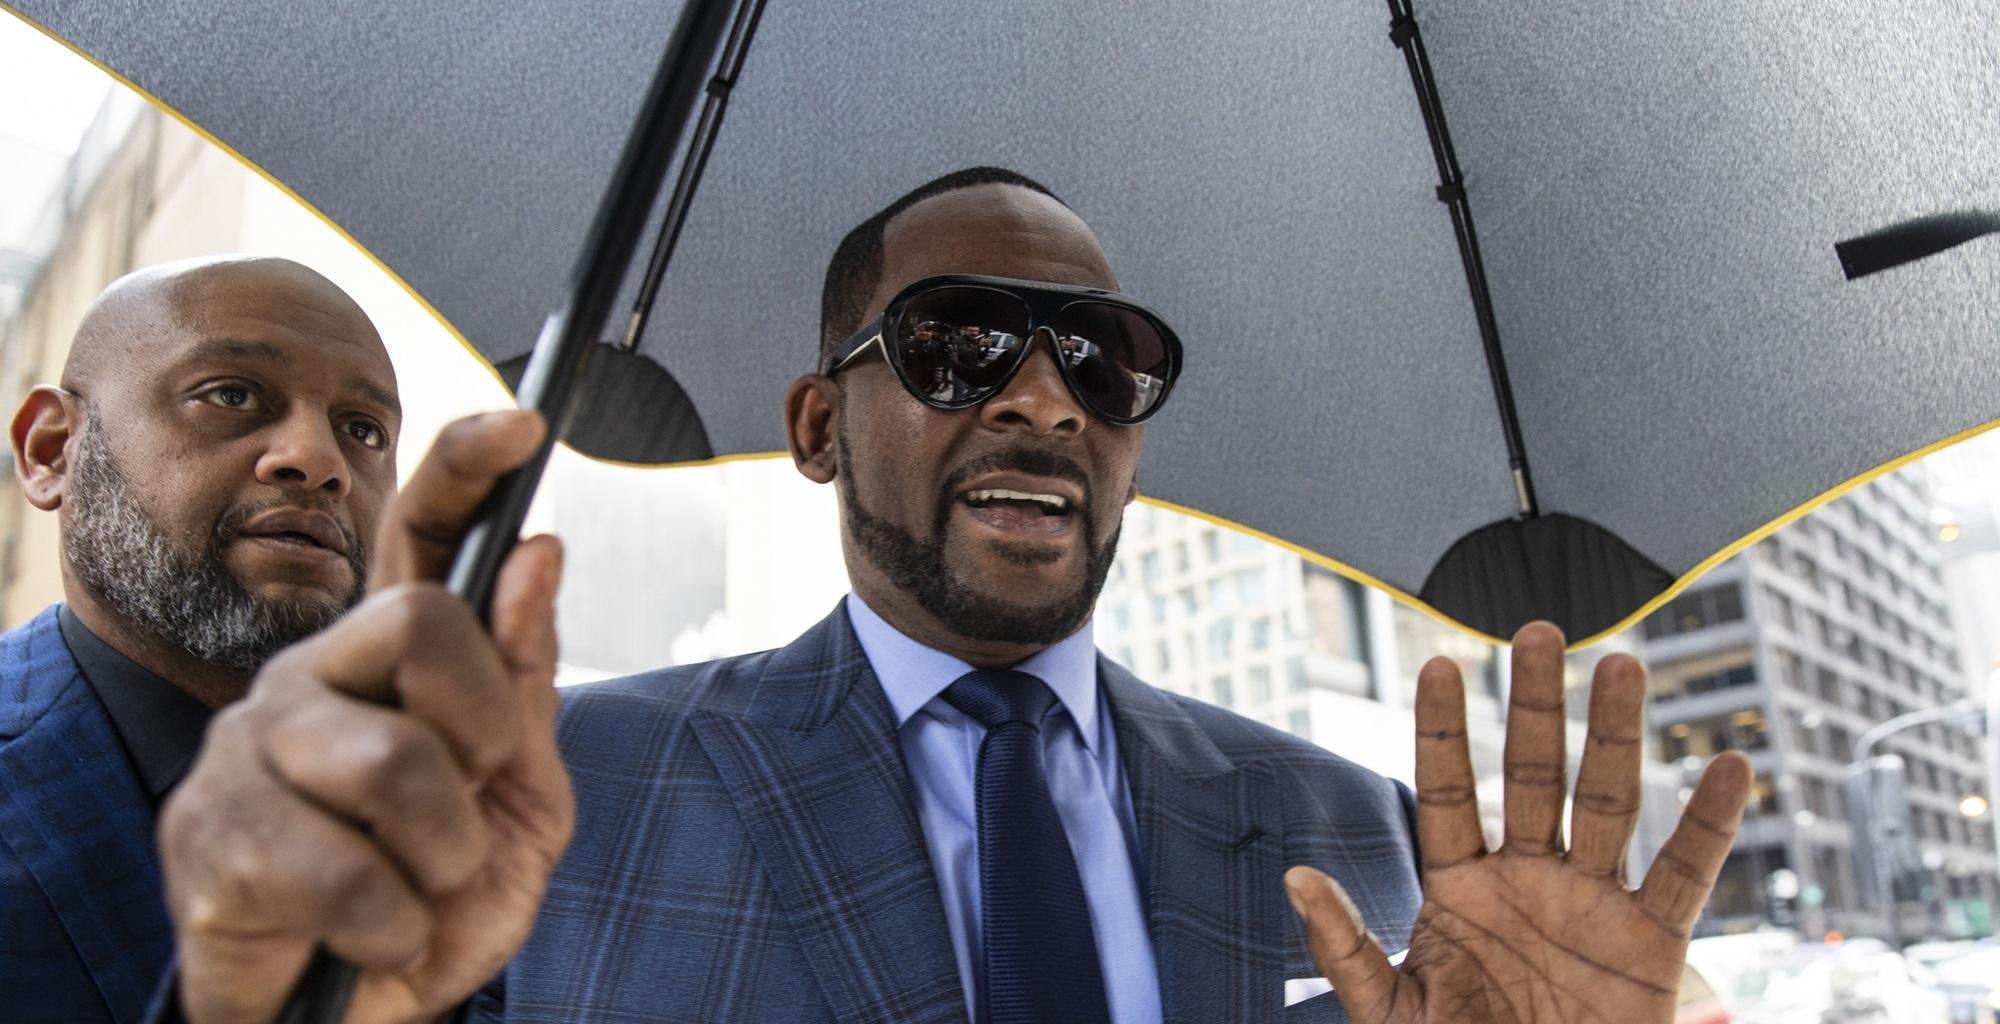 R. Kelly Takes Another L While Behind Bars, But This Time Around His Supporters Are Saying It Is A Set-Up